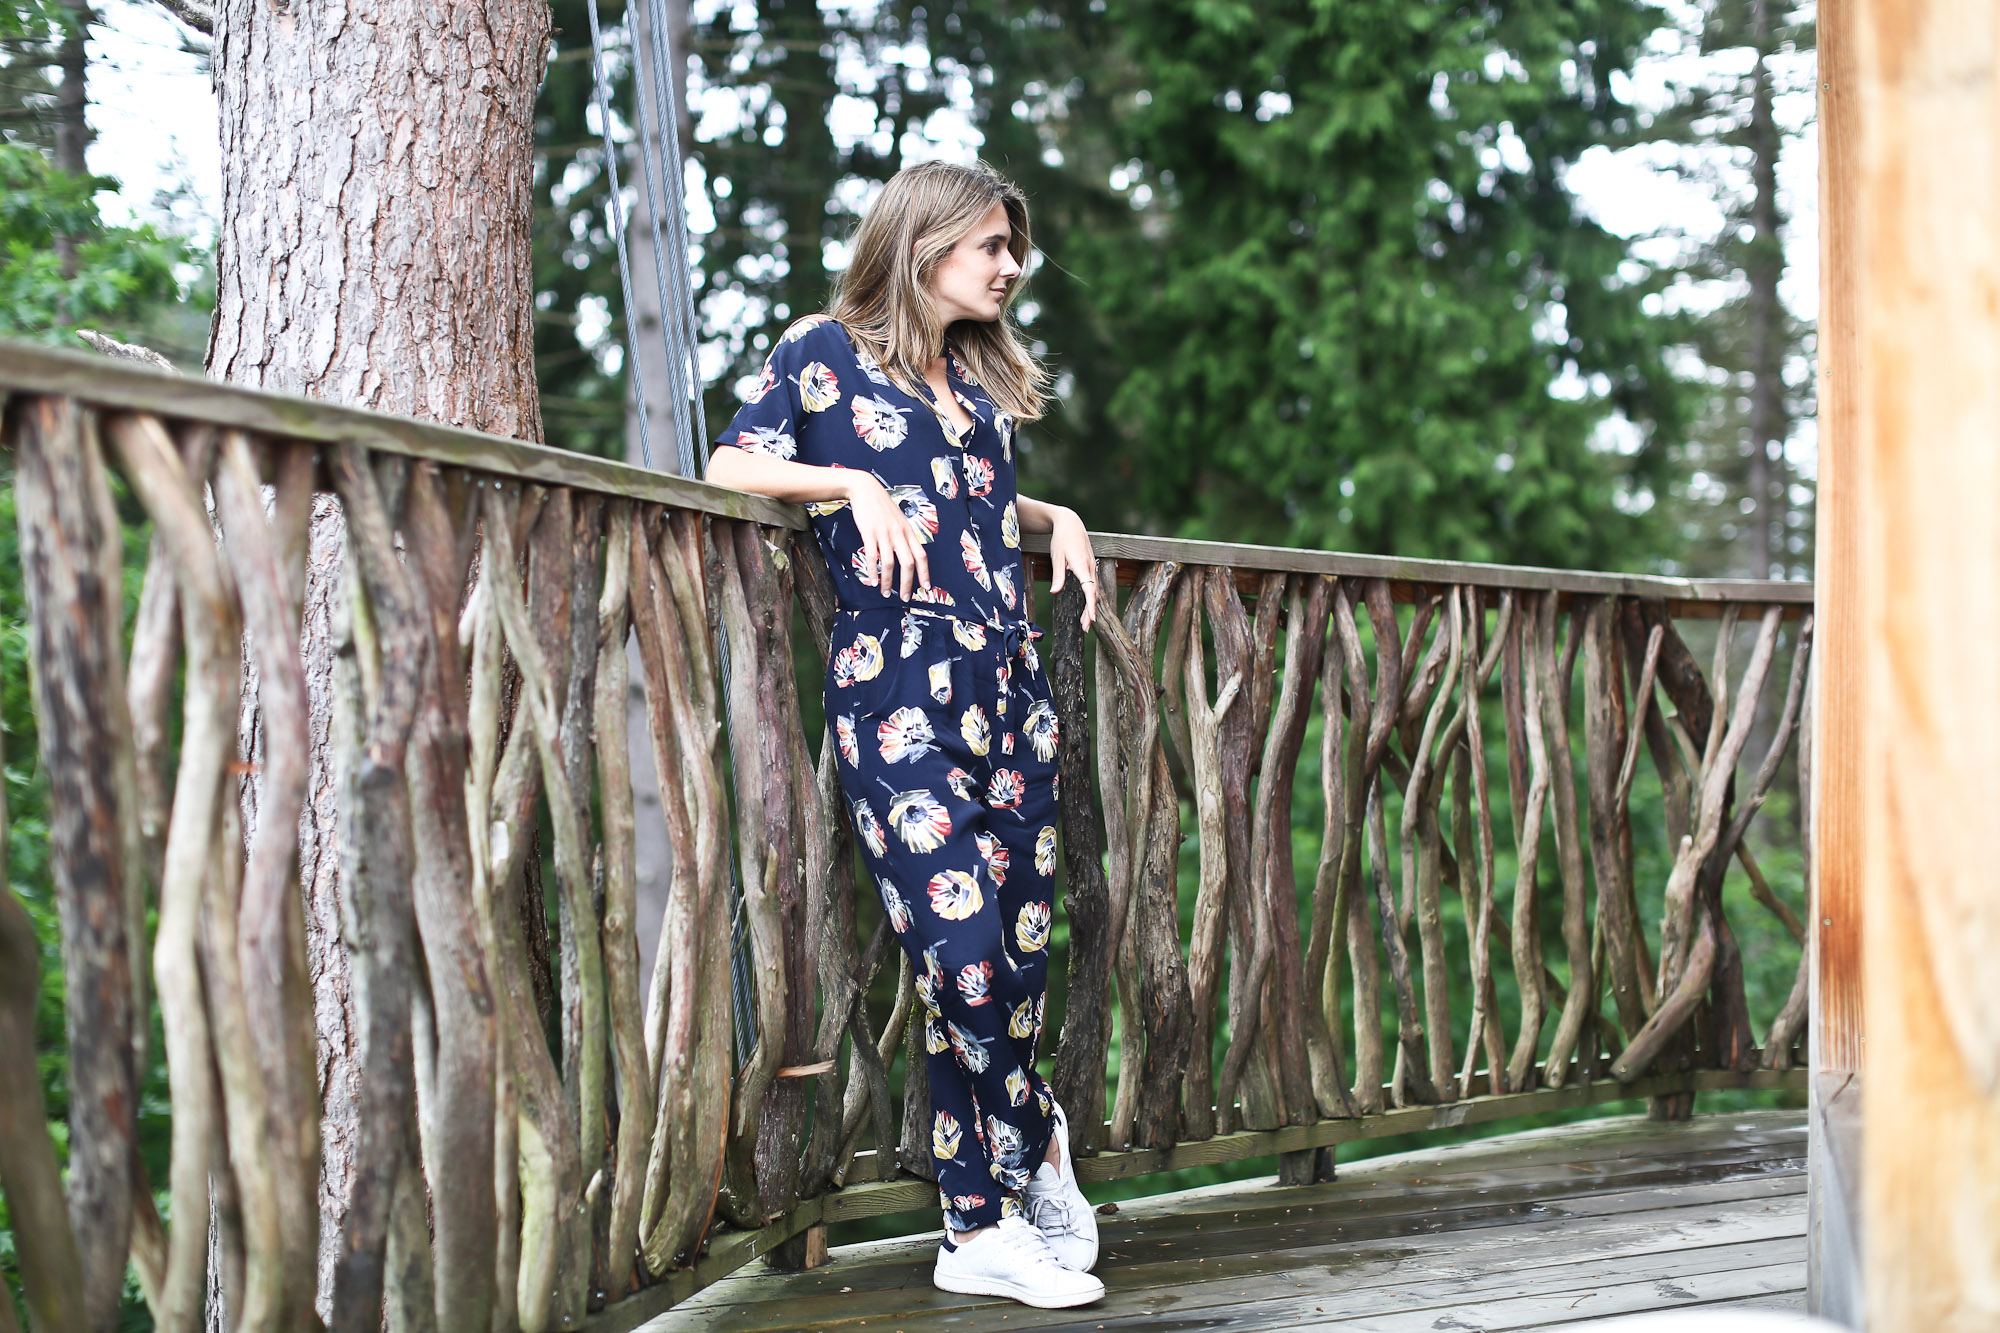 Clochet_streetstyle_zara_flower_printed_jumpsuit_tree_house-6